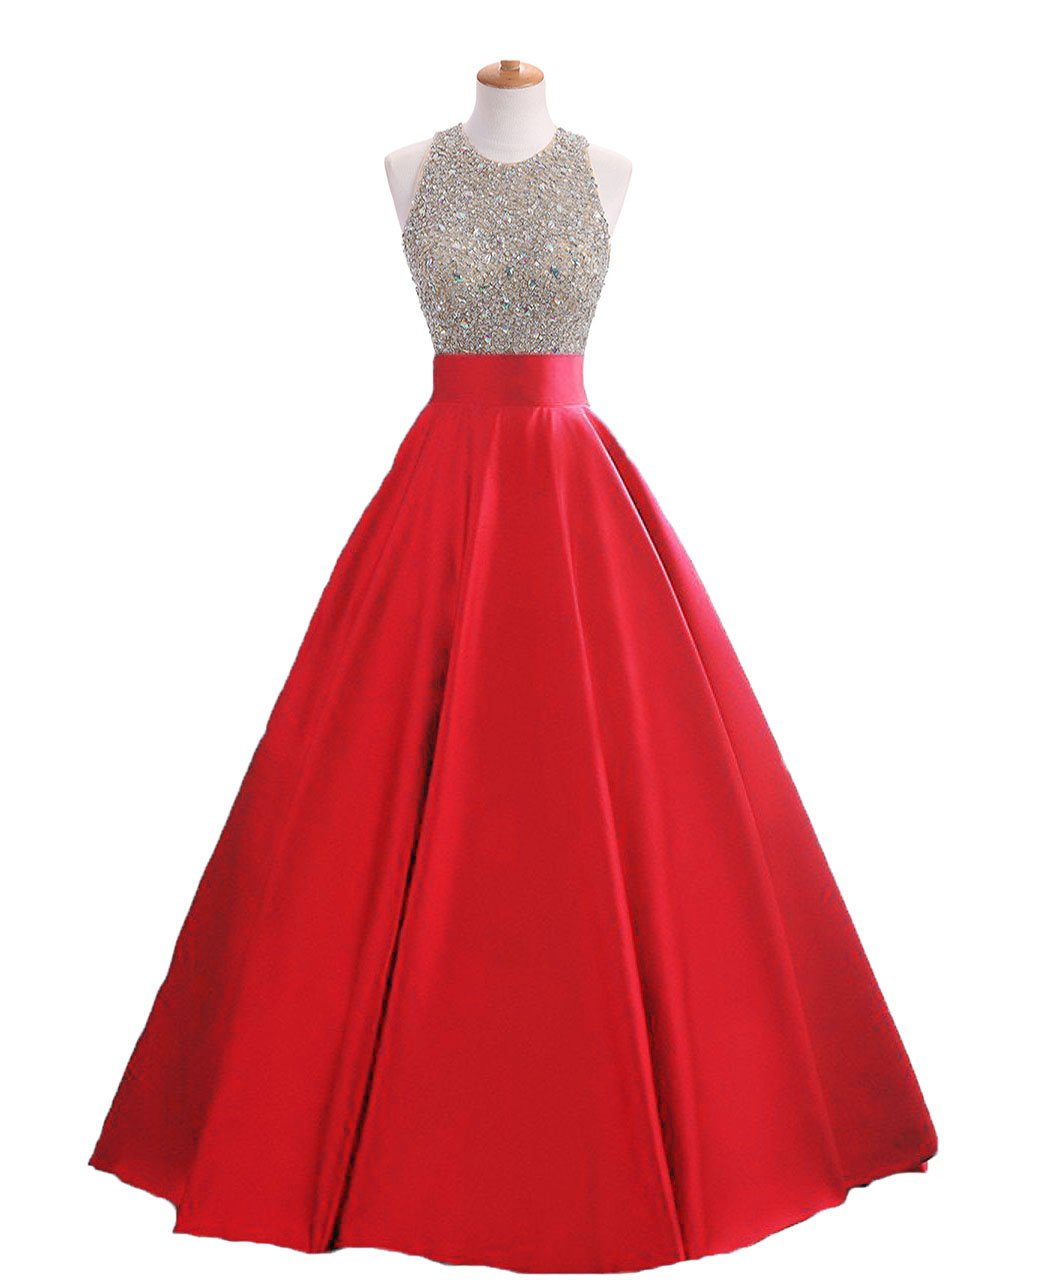 HEIMO Women's Sequins Keyhole Back Evening Ball Gown Beaded Prom Formal Dresses Long H095 6 Red